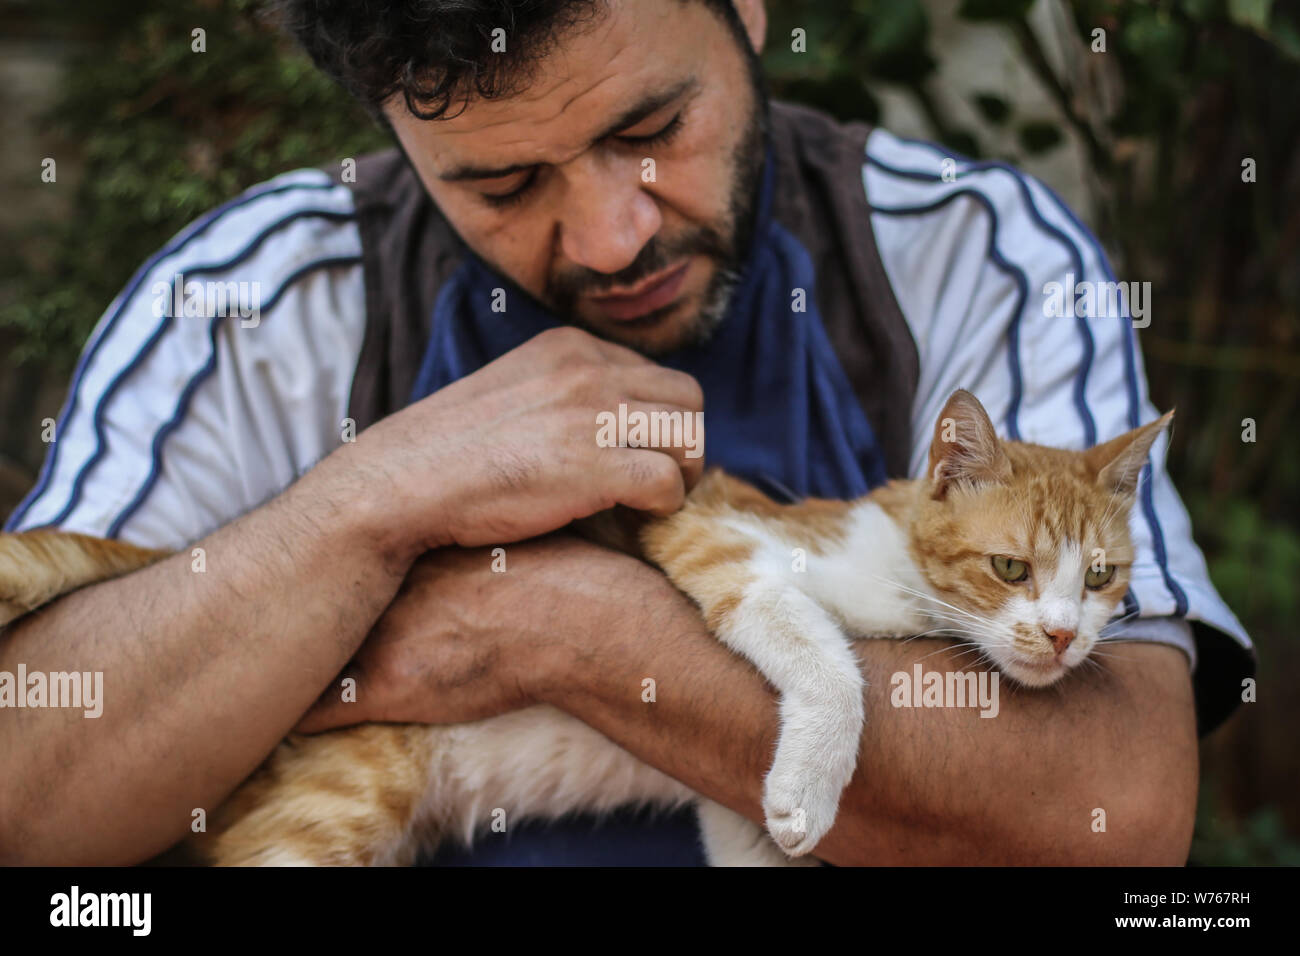 03 August 2019, Syria, Aleppo: Mohammed Alaa al-Jaleel, also known as 'the cat man of Aleppo' pets a cat at the Ernesto's Cat Sanctuary that he runs in Kafr Naya. During the Syrian war in 2012, Al-Jaleel was working as an ambulance driver in Aleppo, he used to drop off food for stray and abandoned cats on his way home after work. In 2015, he started to search for living cats in the war devastated areas and take them home, later in the year his compassionate work with cats gone viral and with the help of an Italian cat lover called Alessandra Abidin, he started to raise funds and receive donati Stock Photo